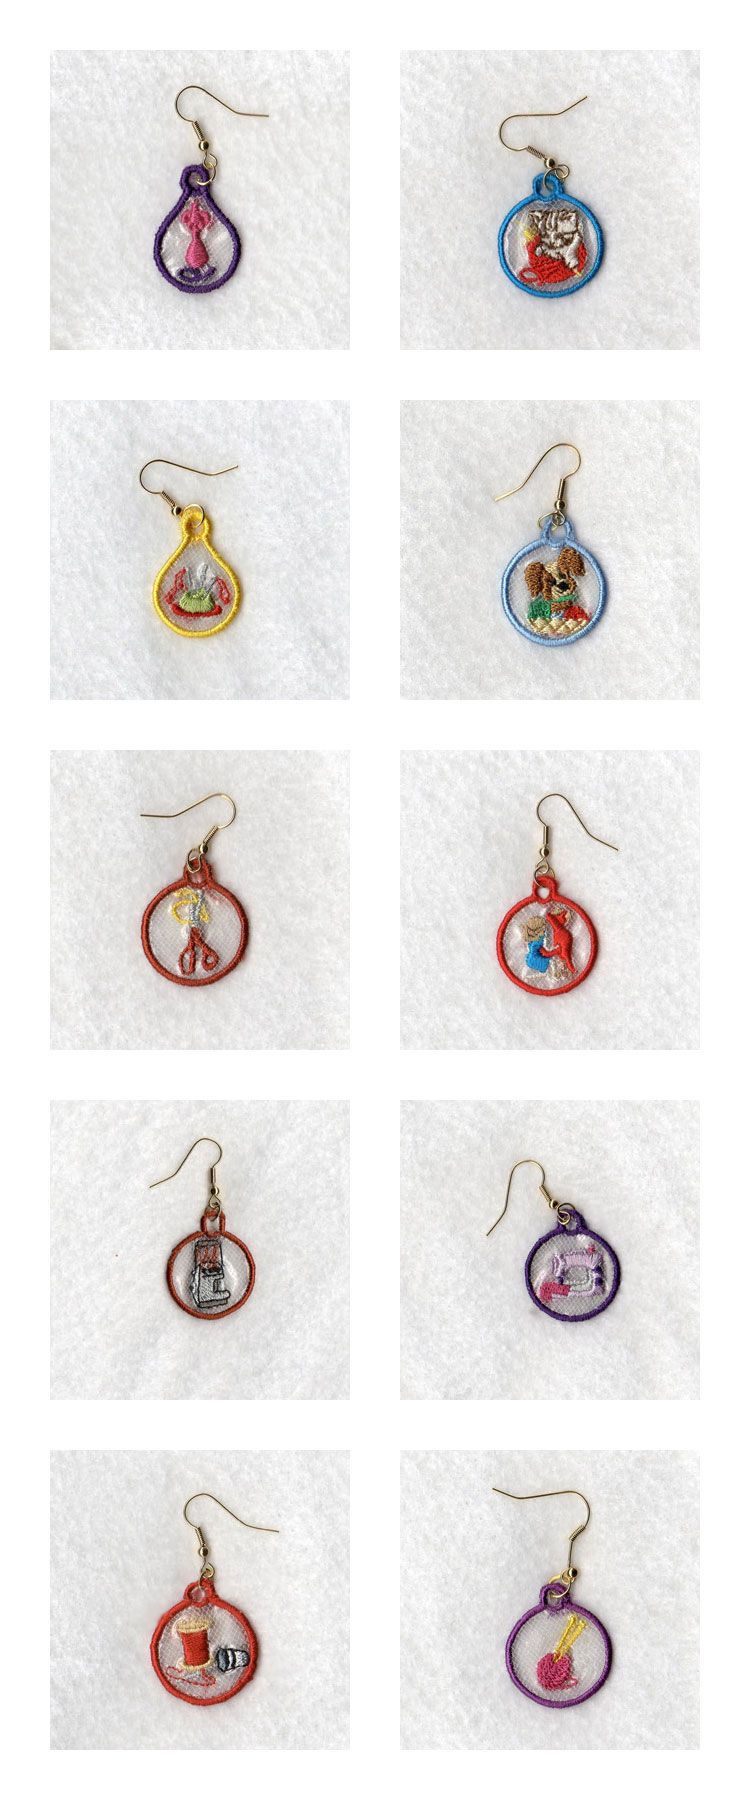 Embroidery machine designs knitting and sewing earrings set